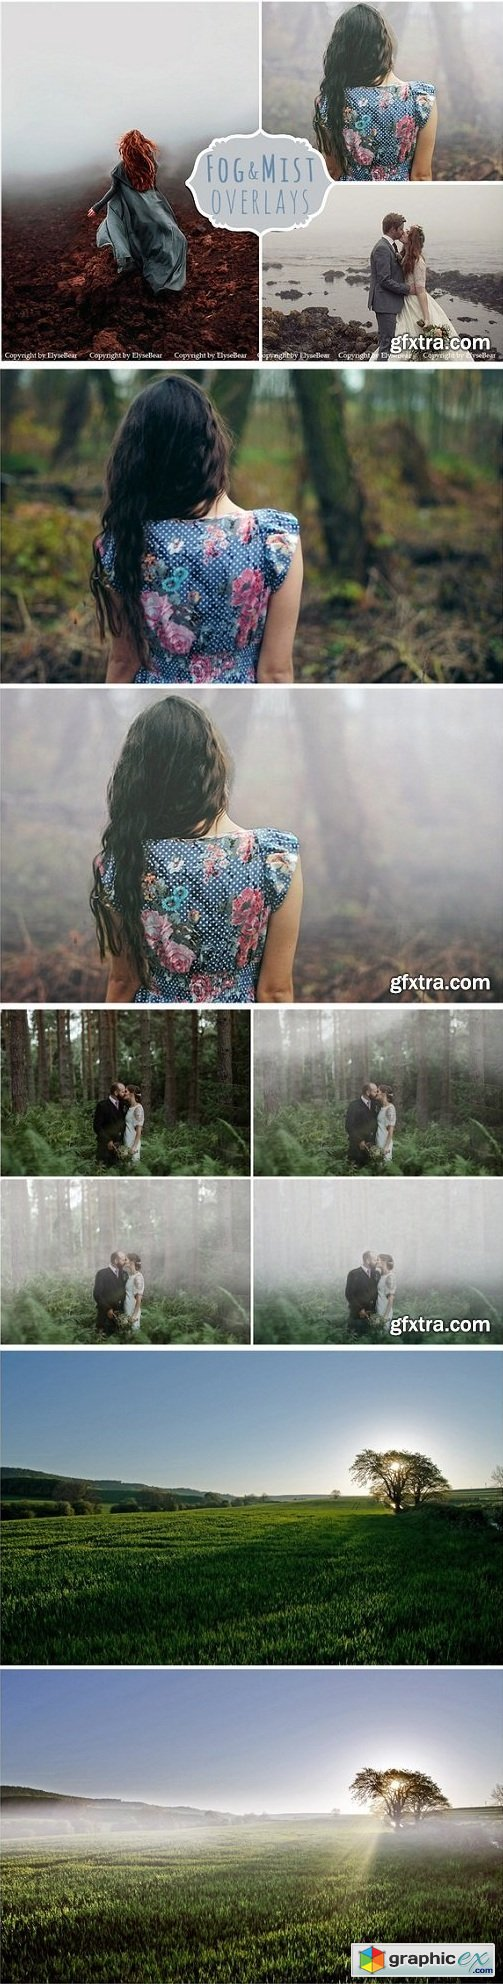 Fog Photoshop Overlays & Brushes » Free Download Vector Stock Image